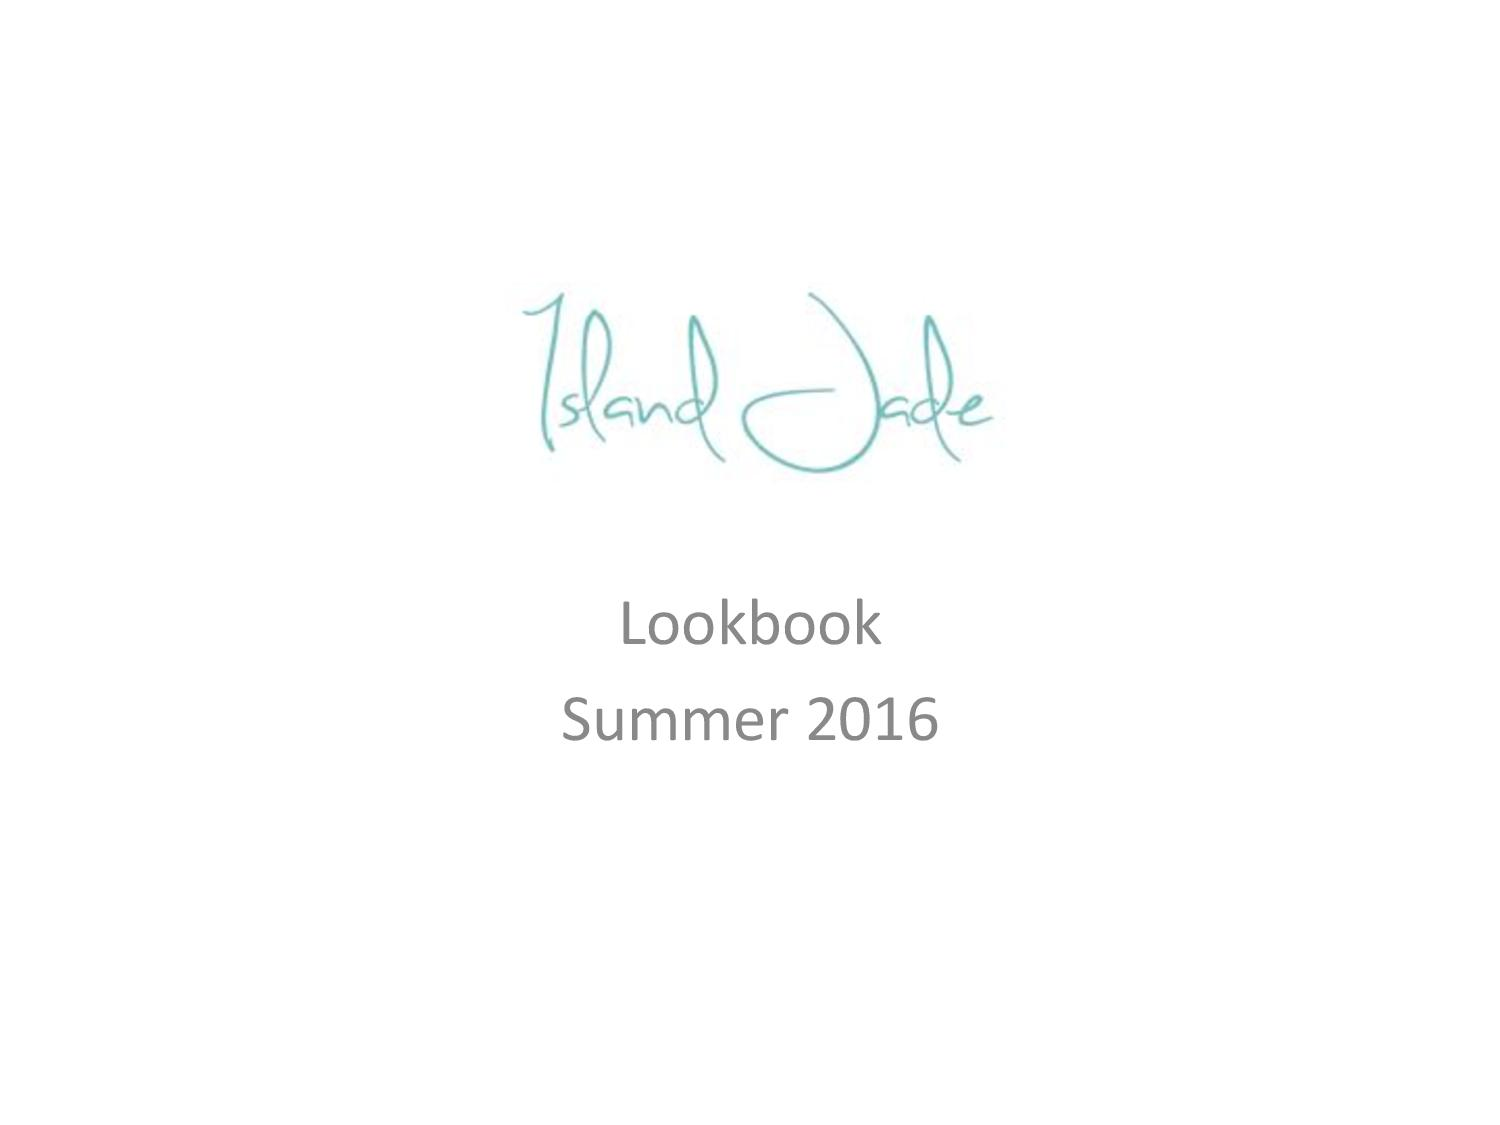 Island Jade Summer 2016 Lookbook-page-001